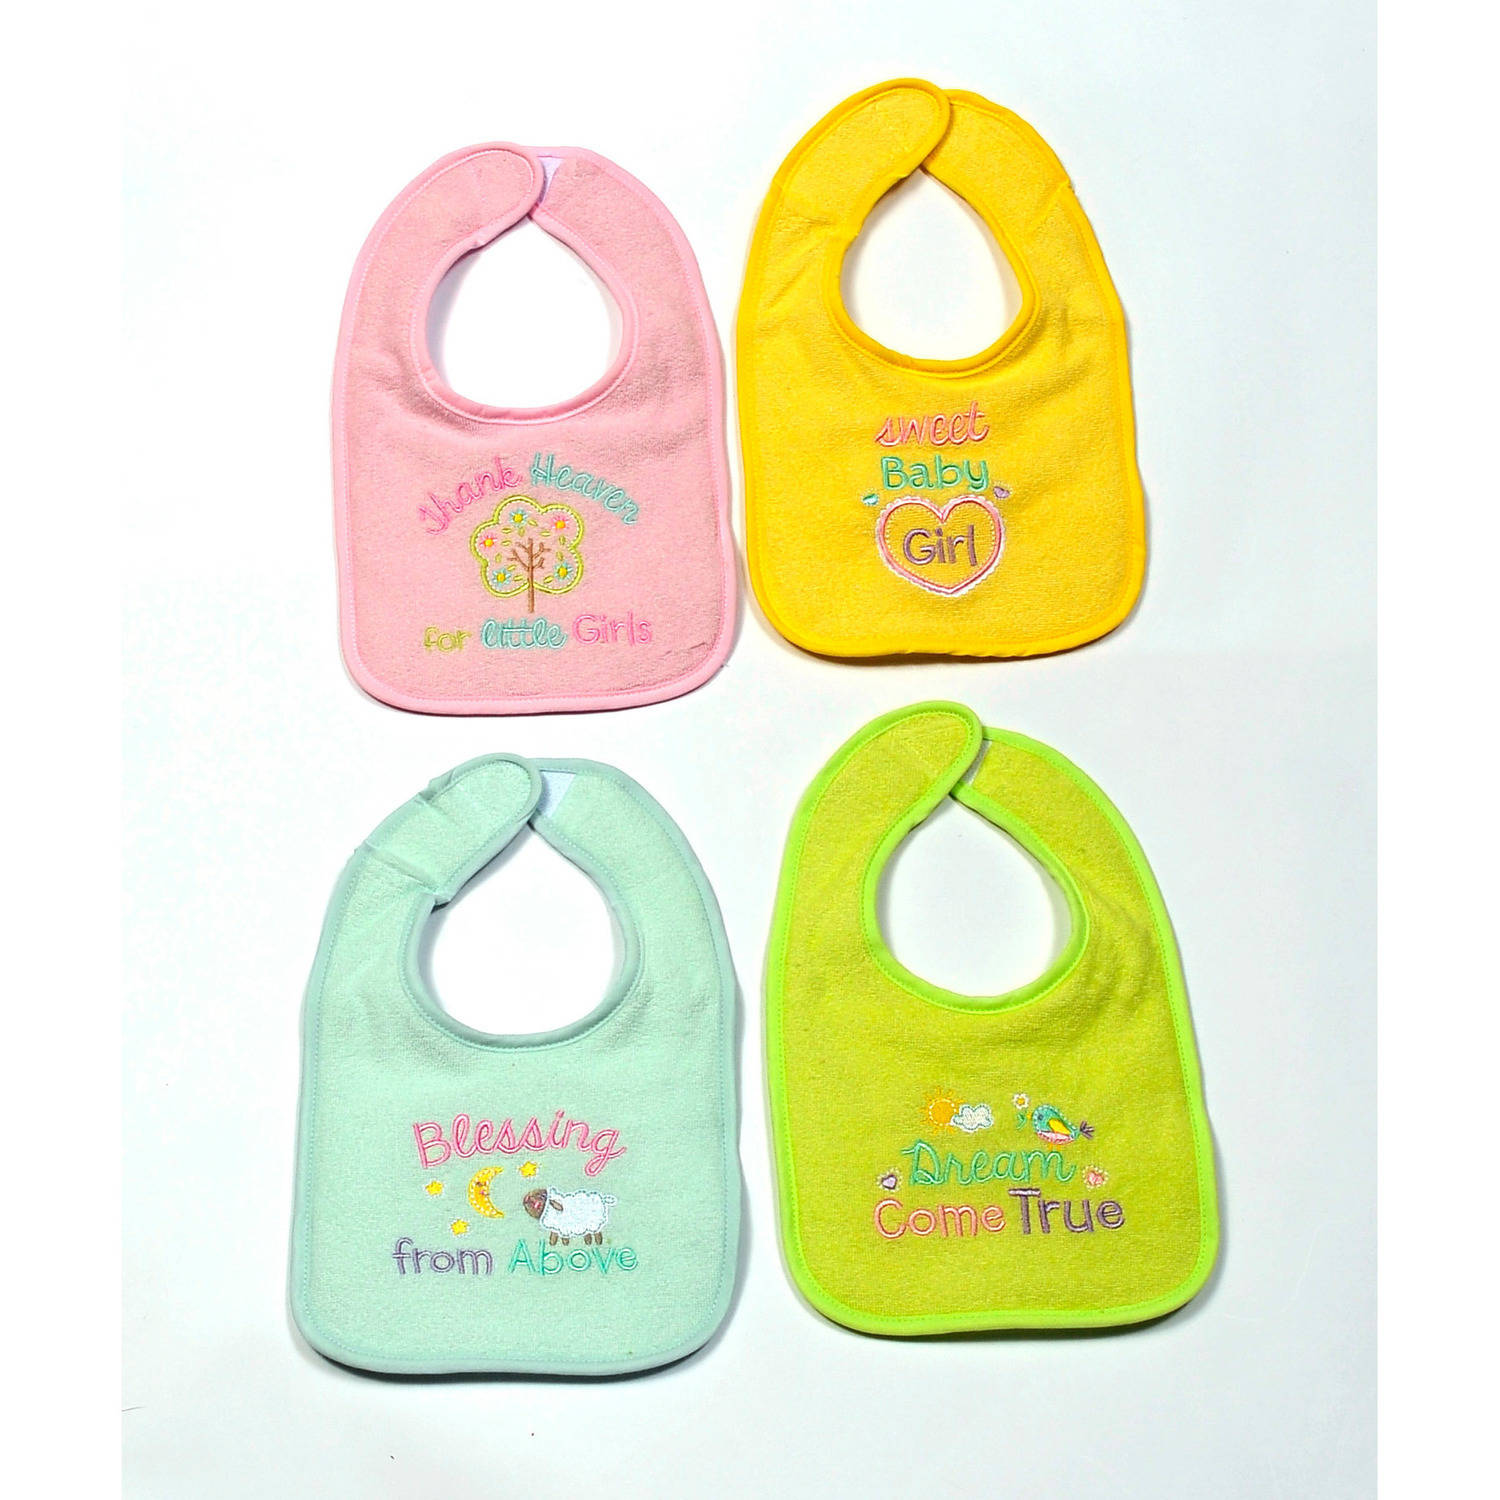 4 Pk Girl Bib w/ Heavenly Saying